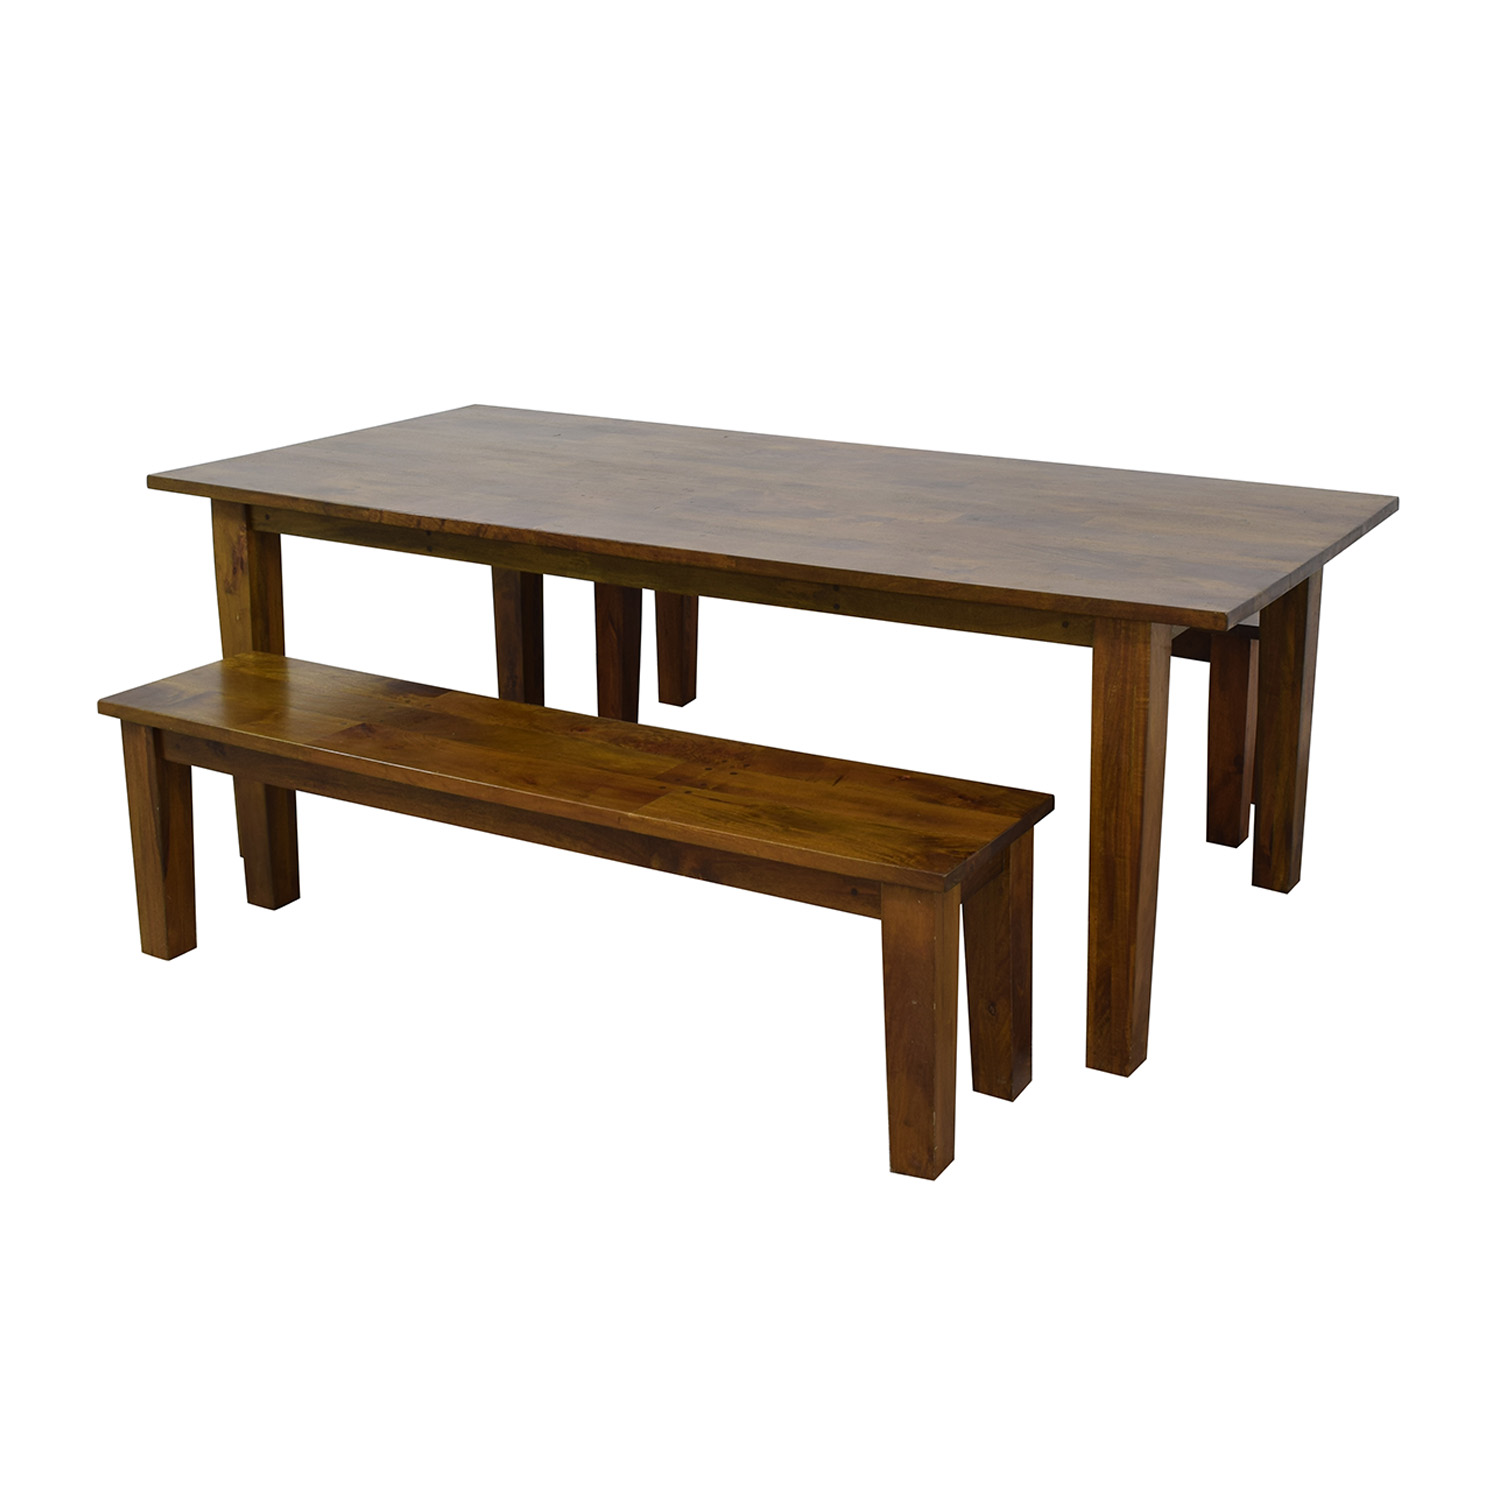 buy Crate & Barrel Wood Table with Two Benches Crate & Barrel Dining Sets